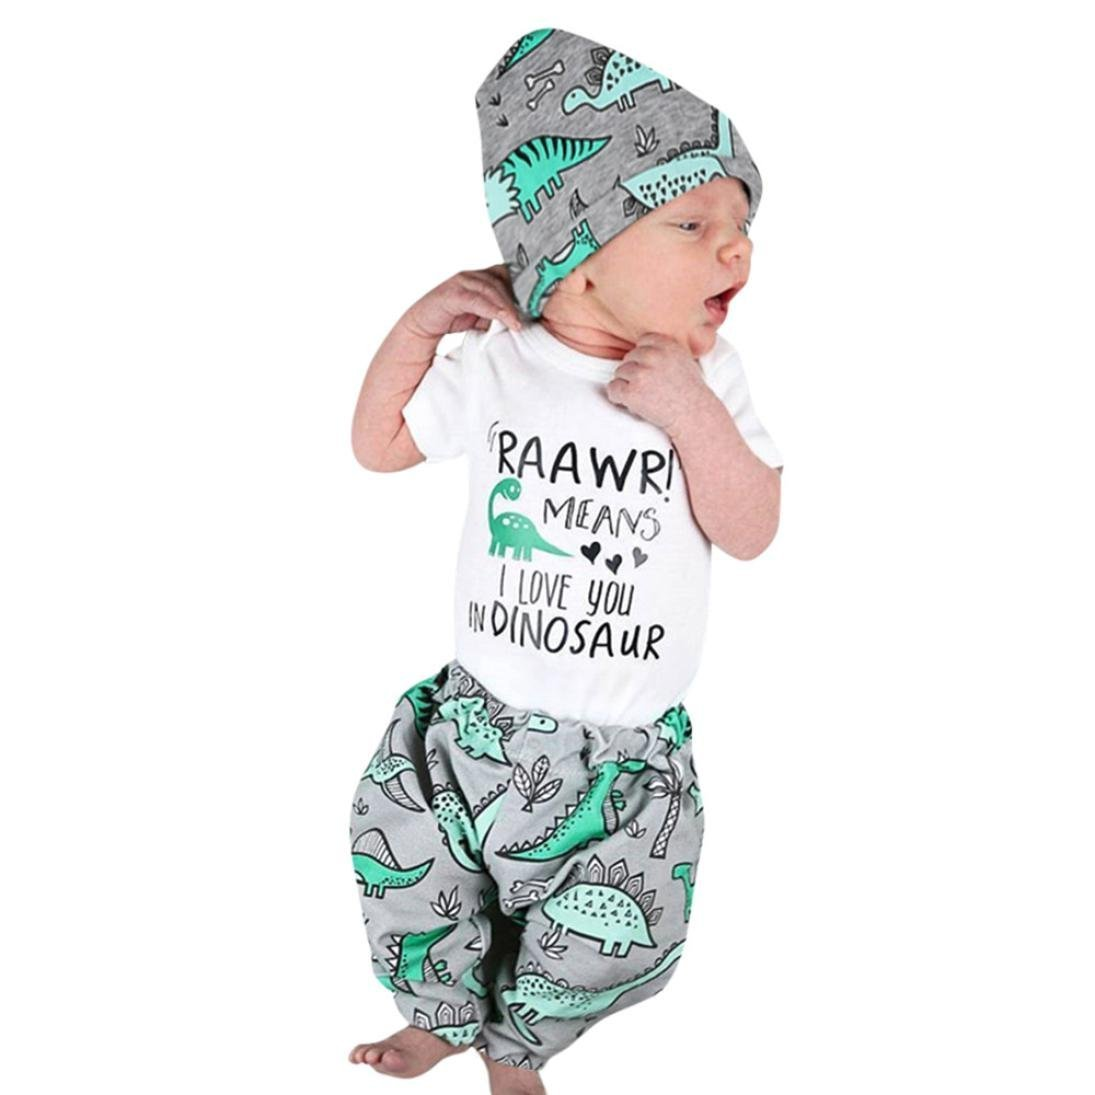 Newborn Infant Baby Boy Girl 3Pcs Outfits Set, Cartoon Dinosaur Sleepwear Letter Print Romper Tops+ Pants Hat (White, 6-12 Months)